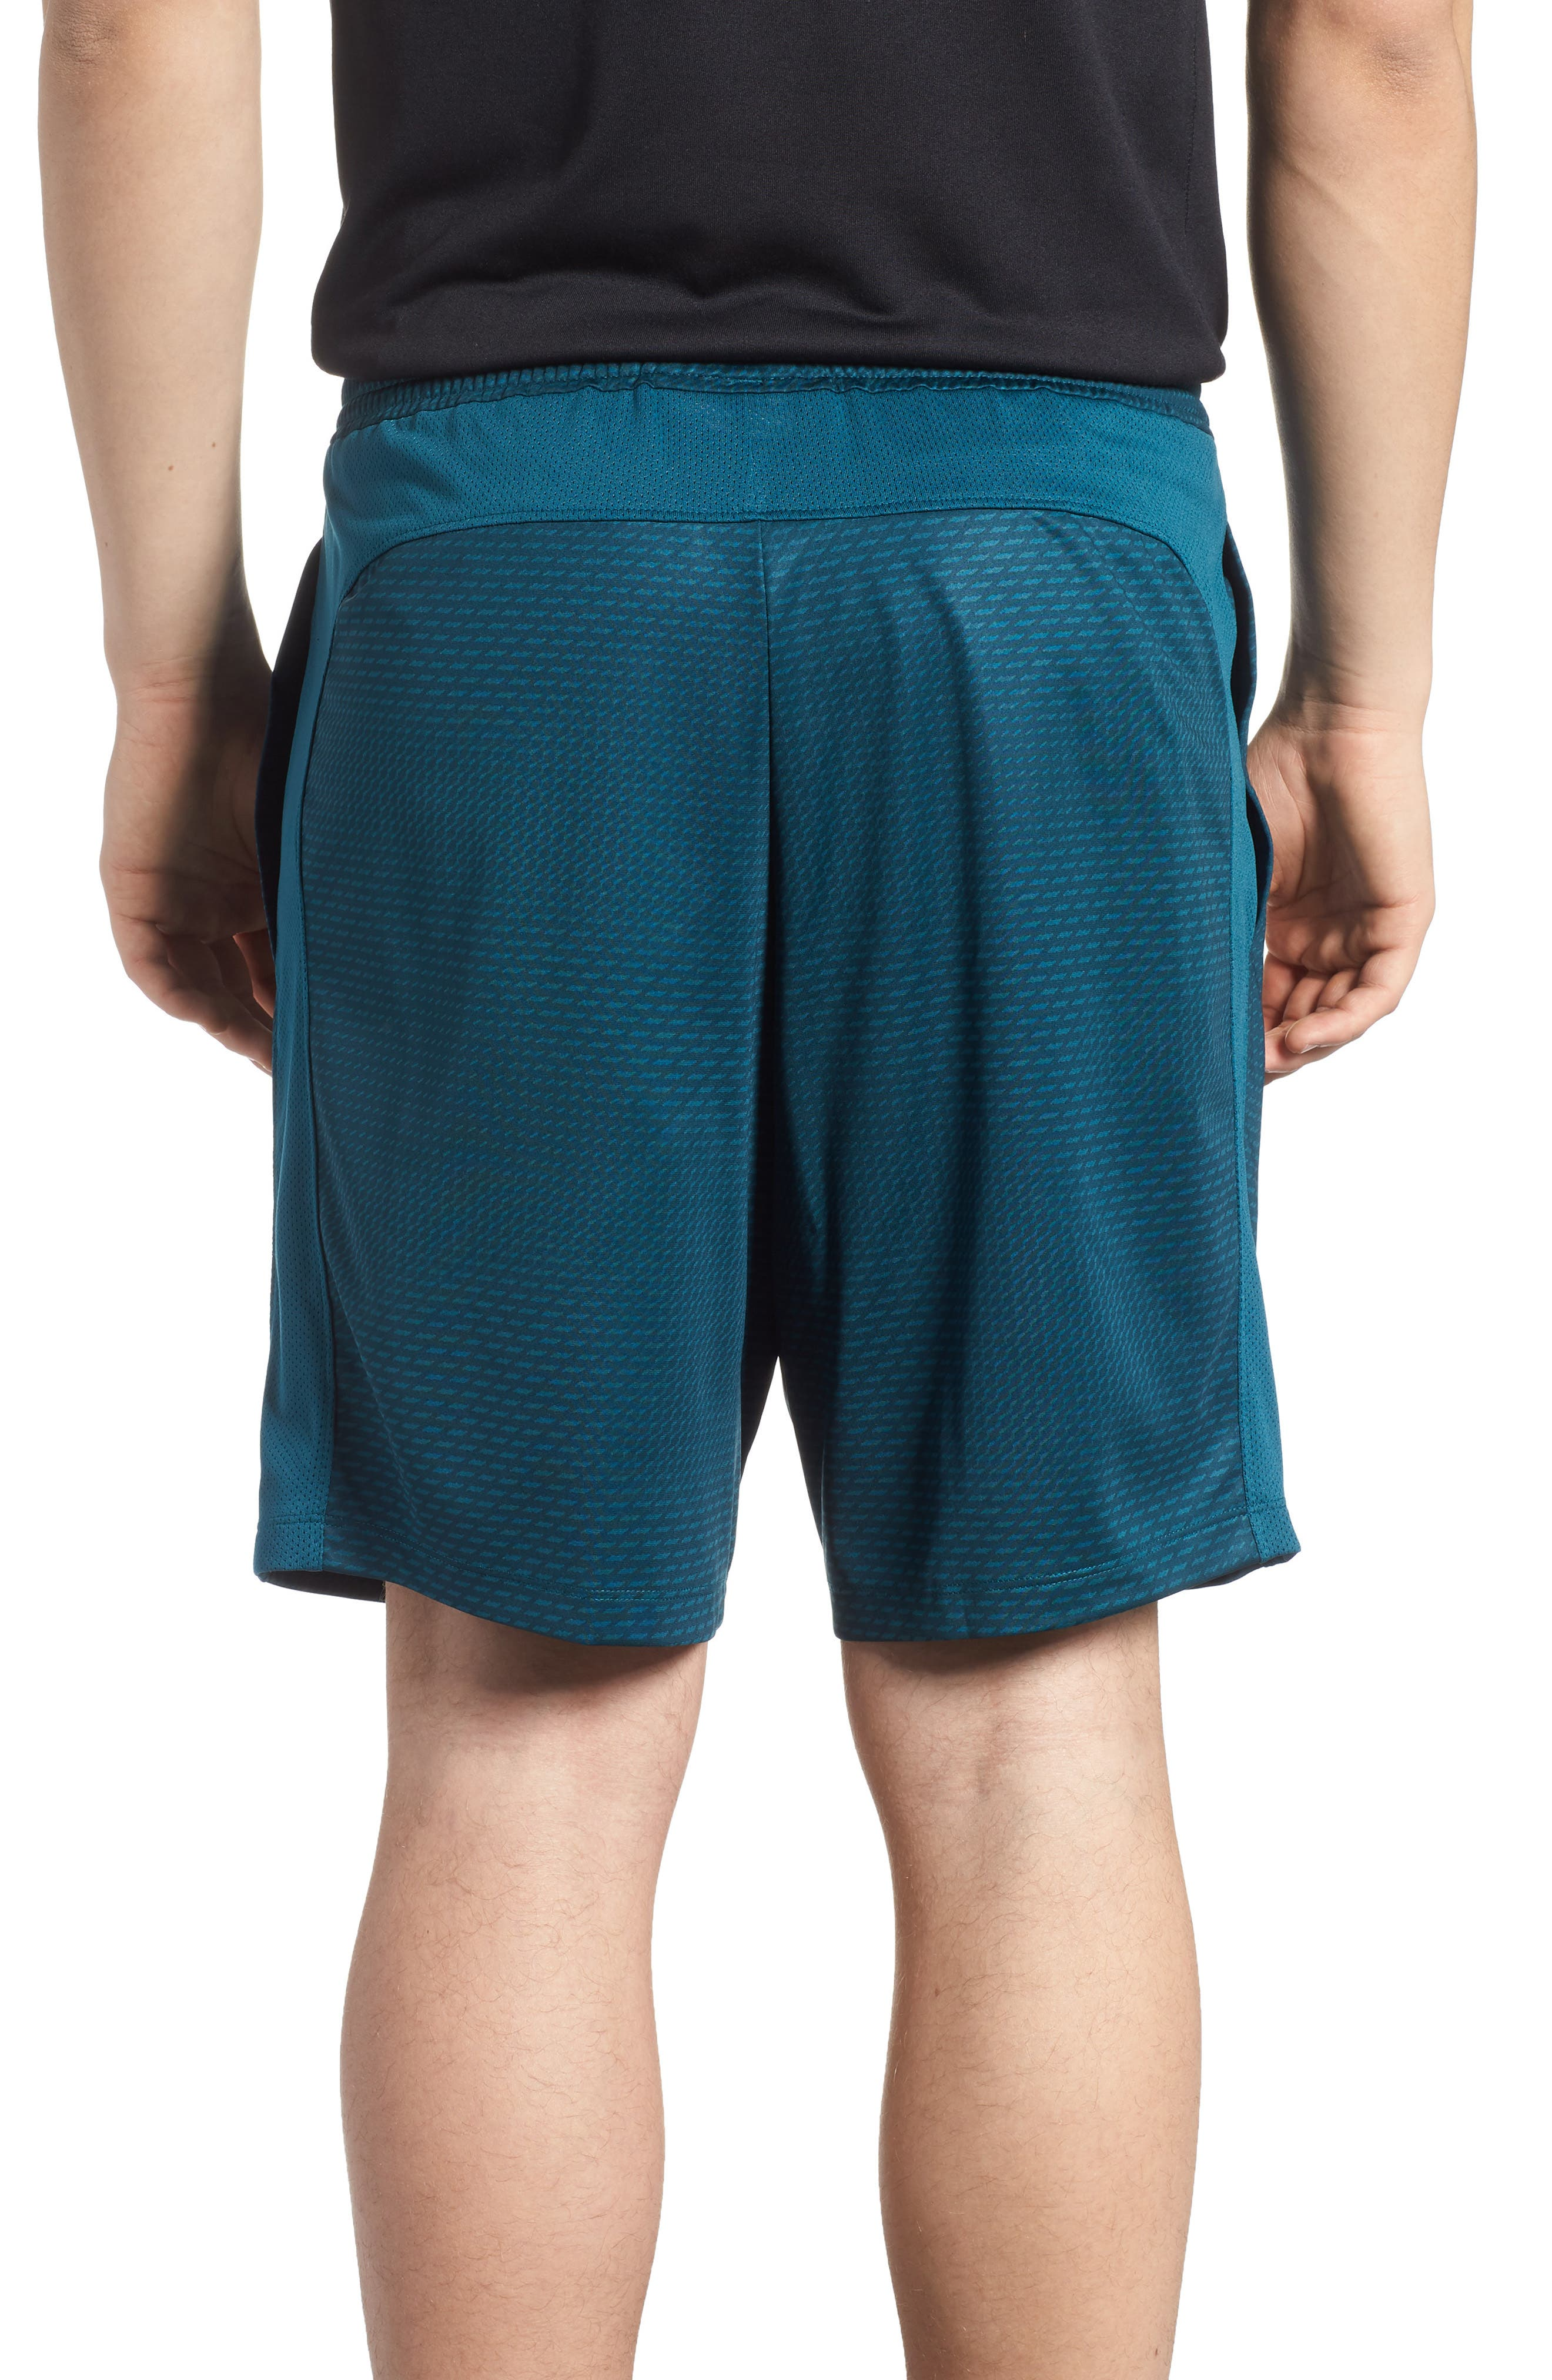 Raid 2.0 Classic Fit Shorts,                             Alternate thumbnail 2, color,                             Tourmaline Teal/ Stealth Gray